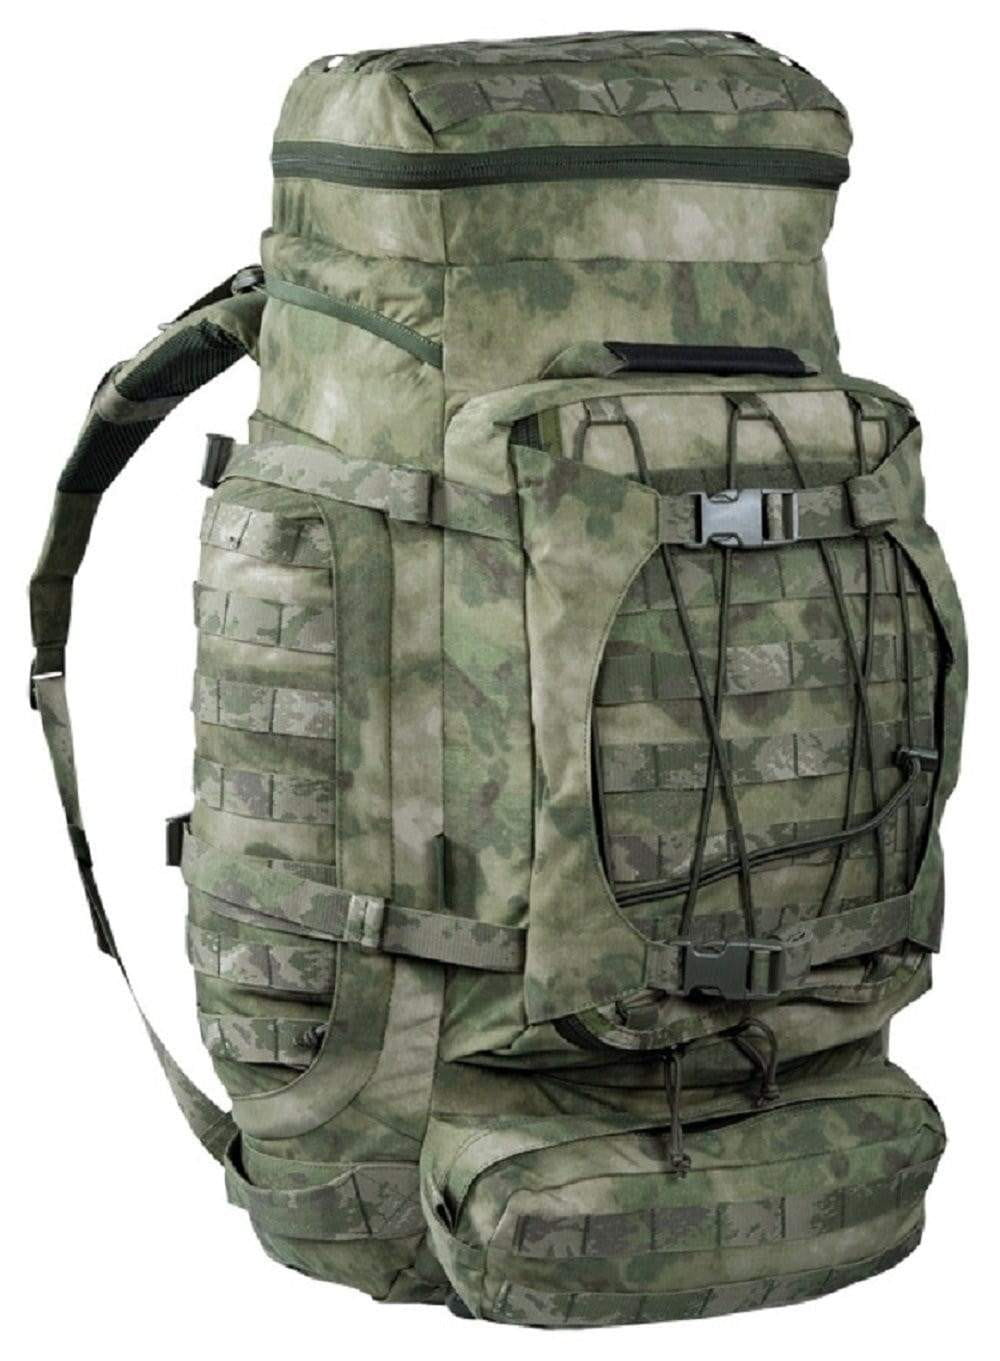 Warrior Assault Systems Backpack X300 Pack - CHK-SHIELD | Outdoor Army - Tactical Gear Shop